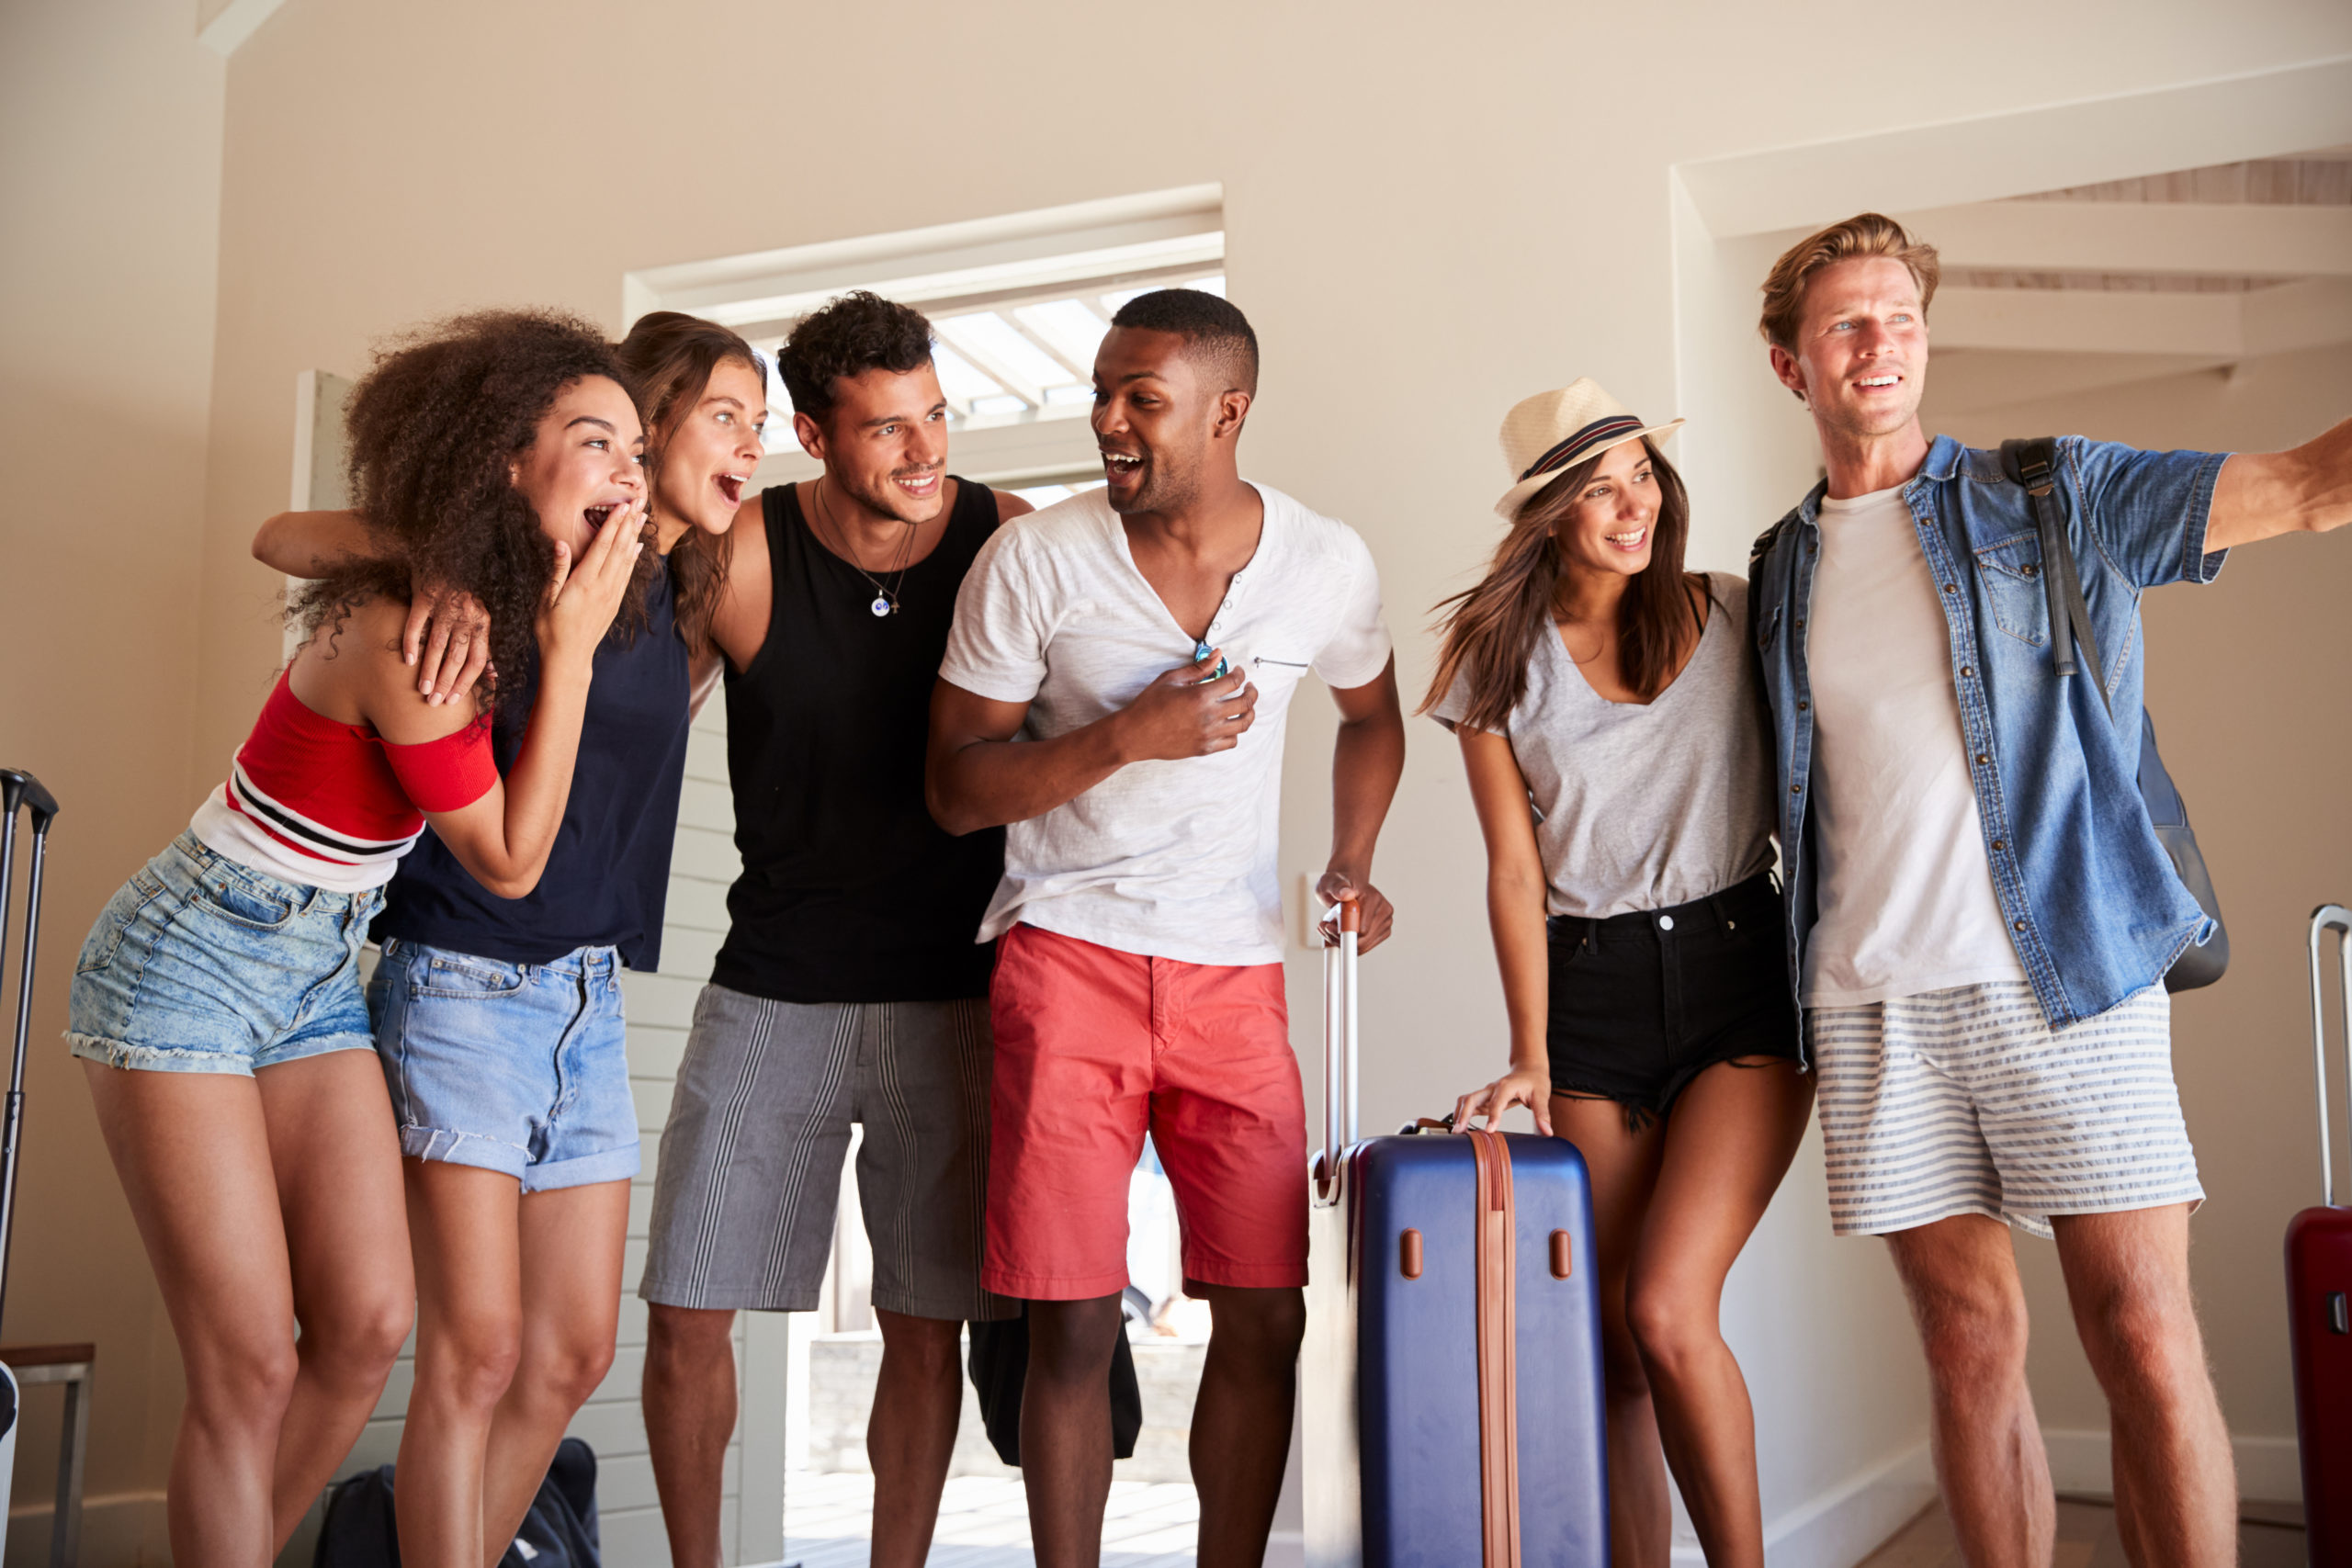 noise detection vacation rental house college students suitcases